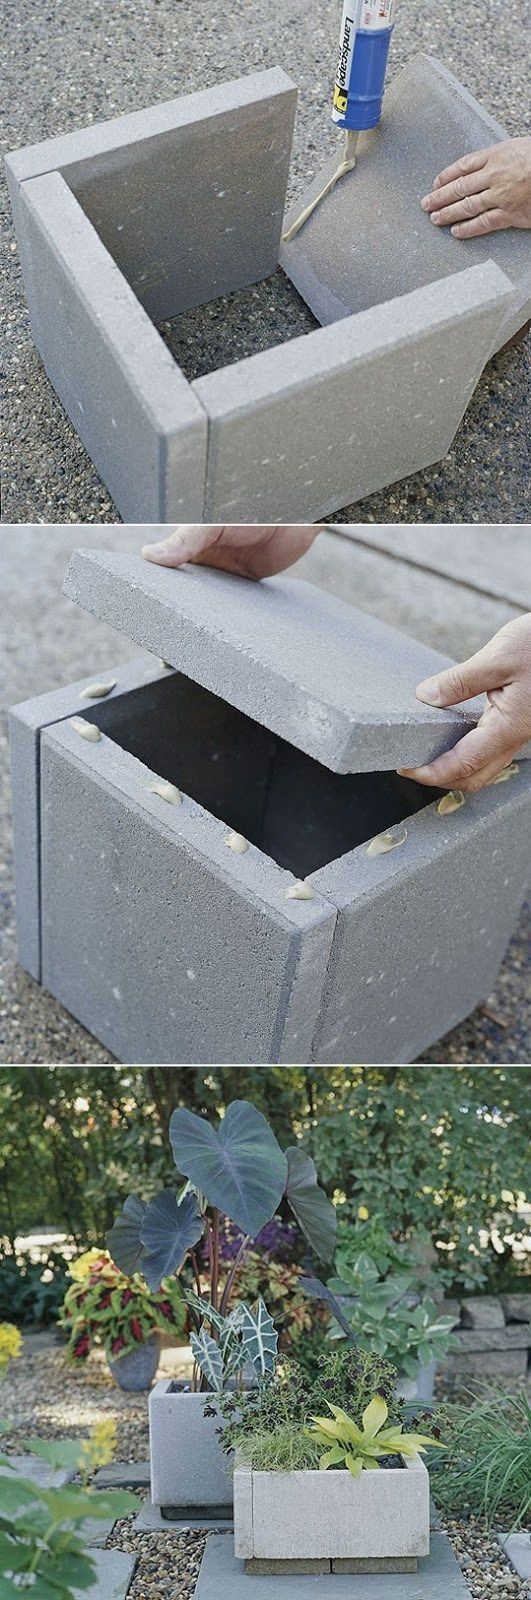 how to make cement planter molds